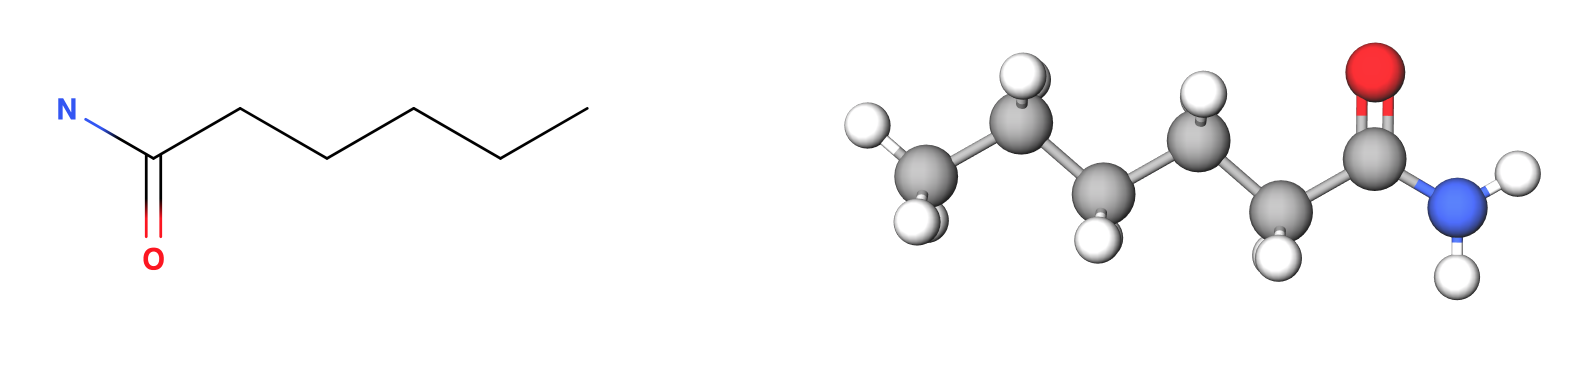 Nylon 6 - chemical structure and